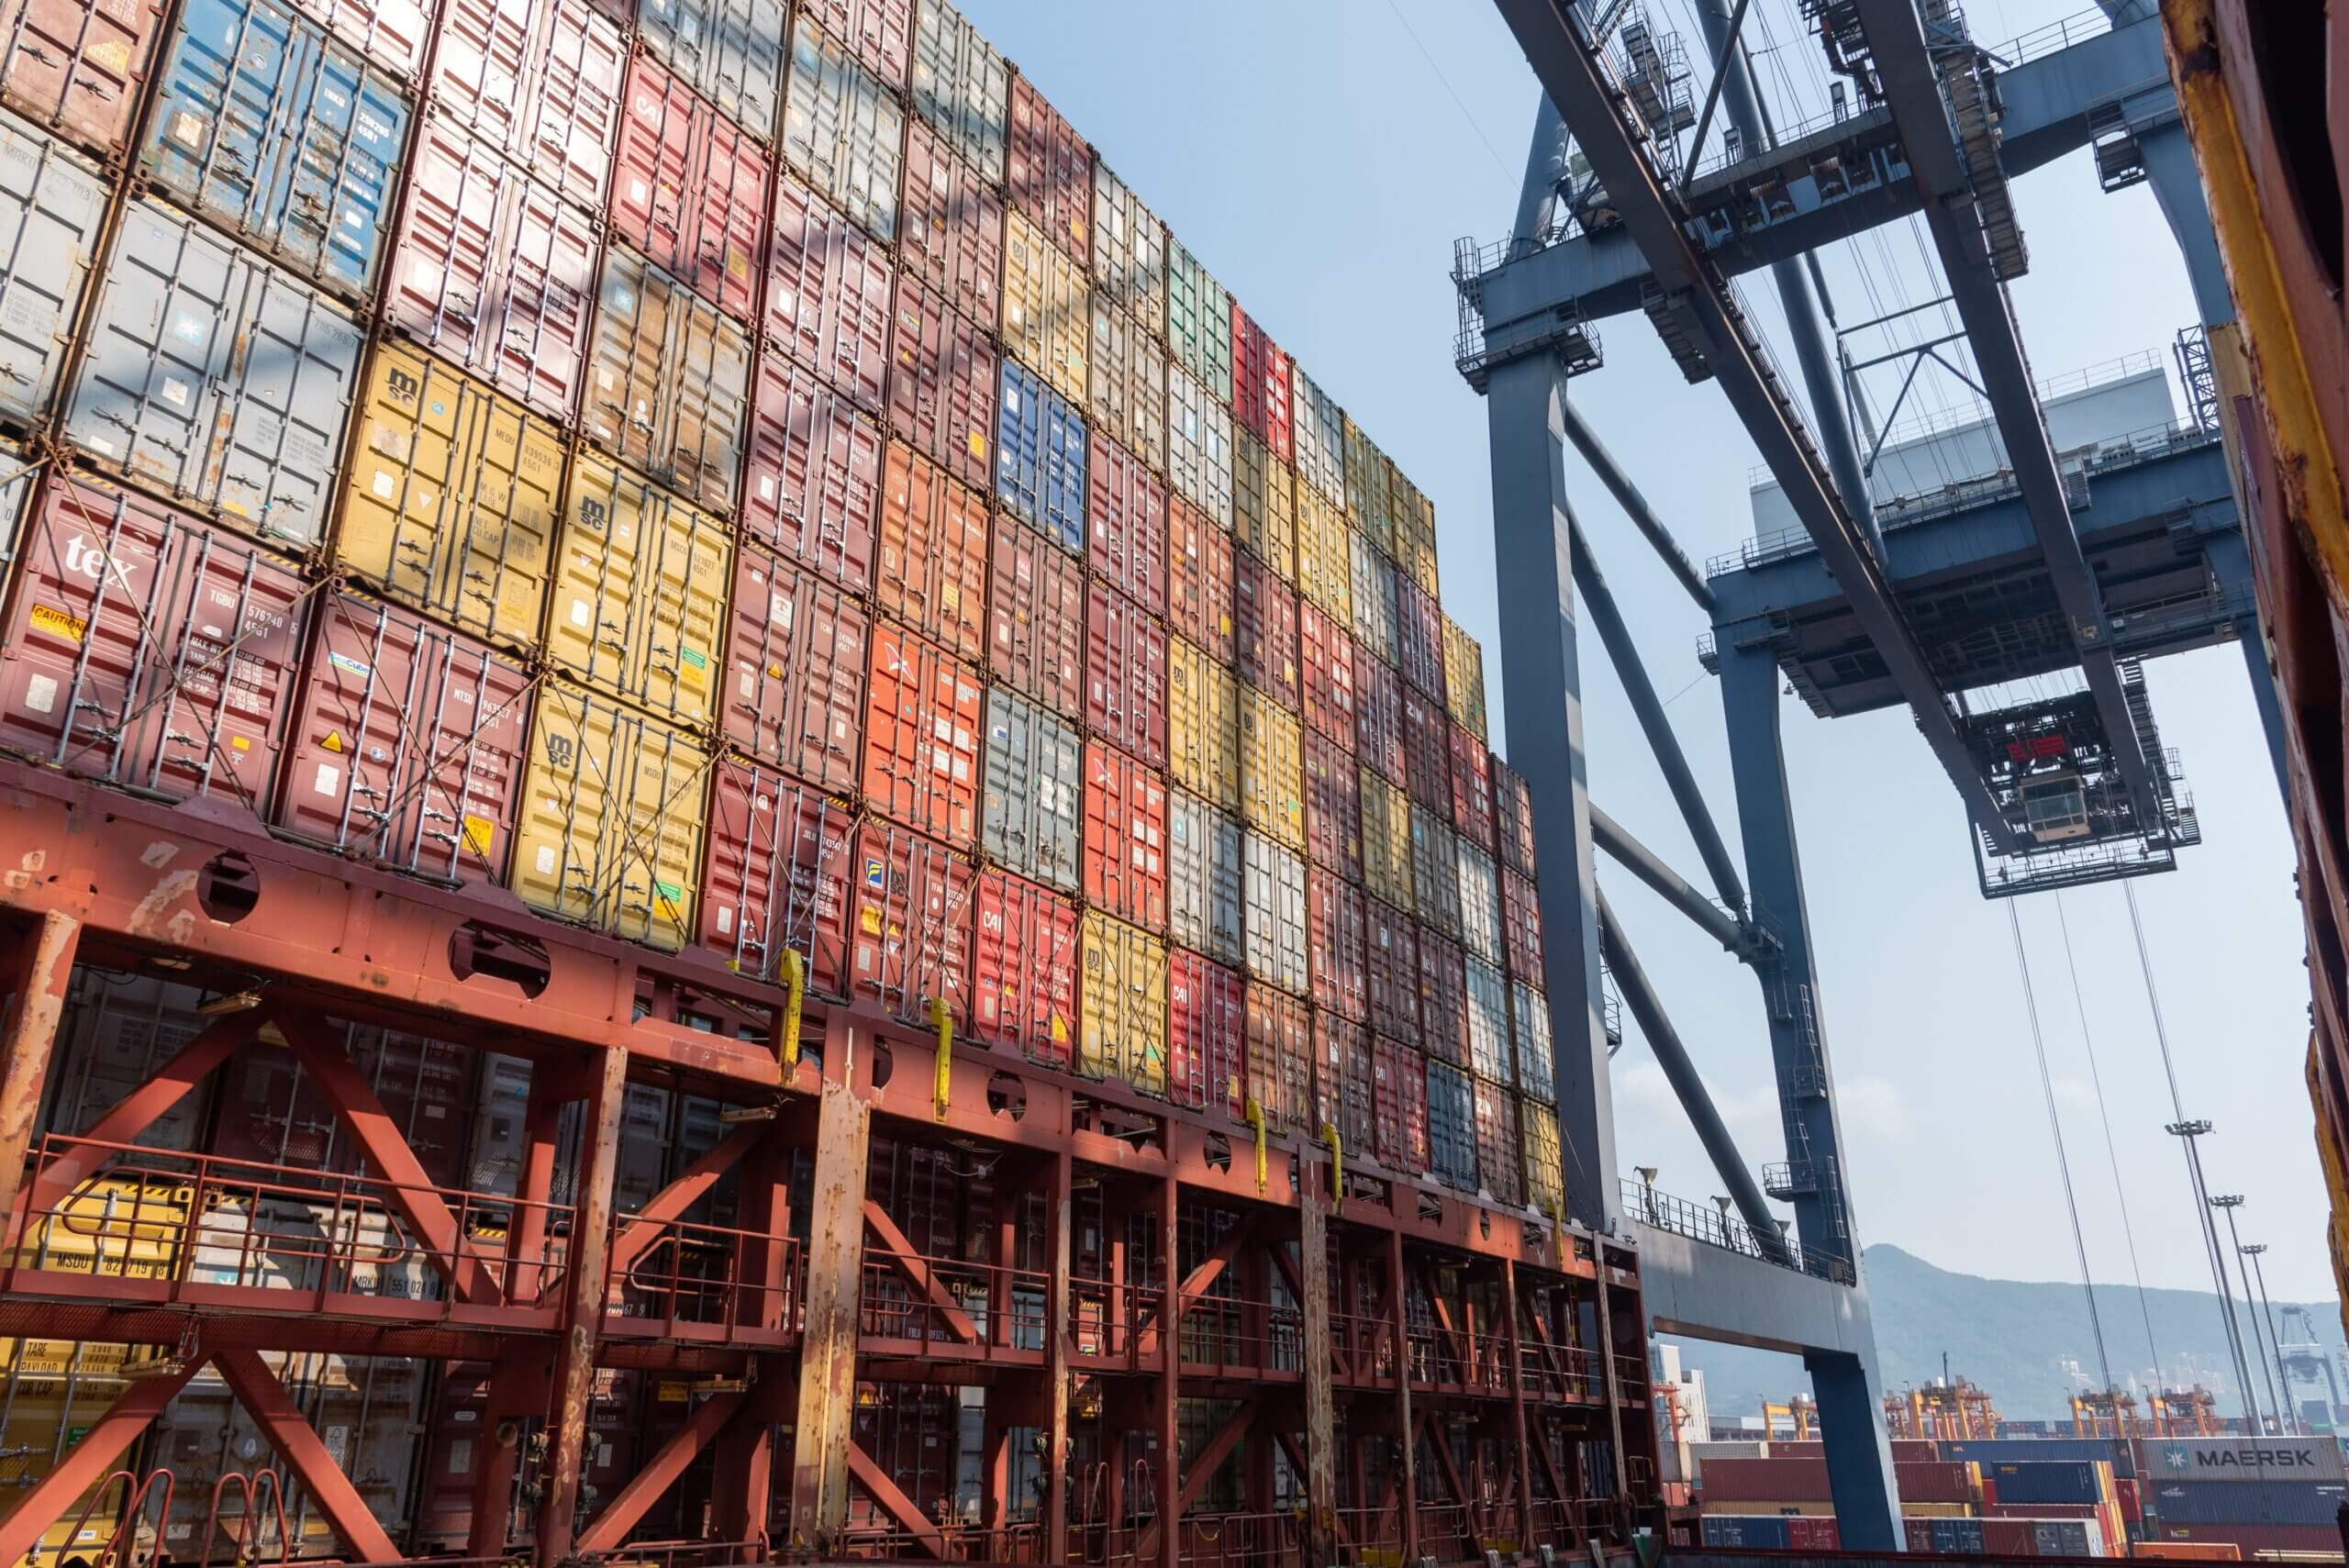 The Yantian port in Southern China was temporarily closed in late May due to a Covid-19 outbreak among the port's staff.